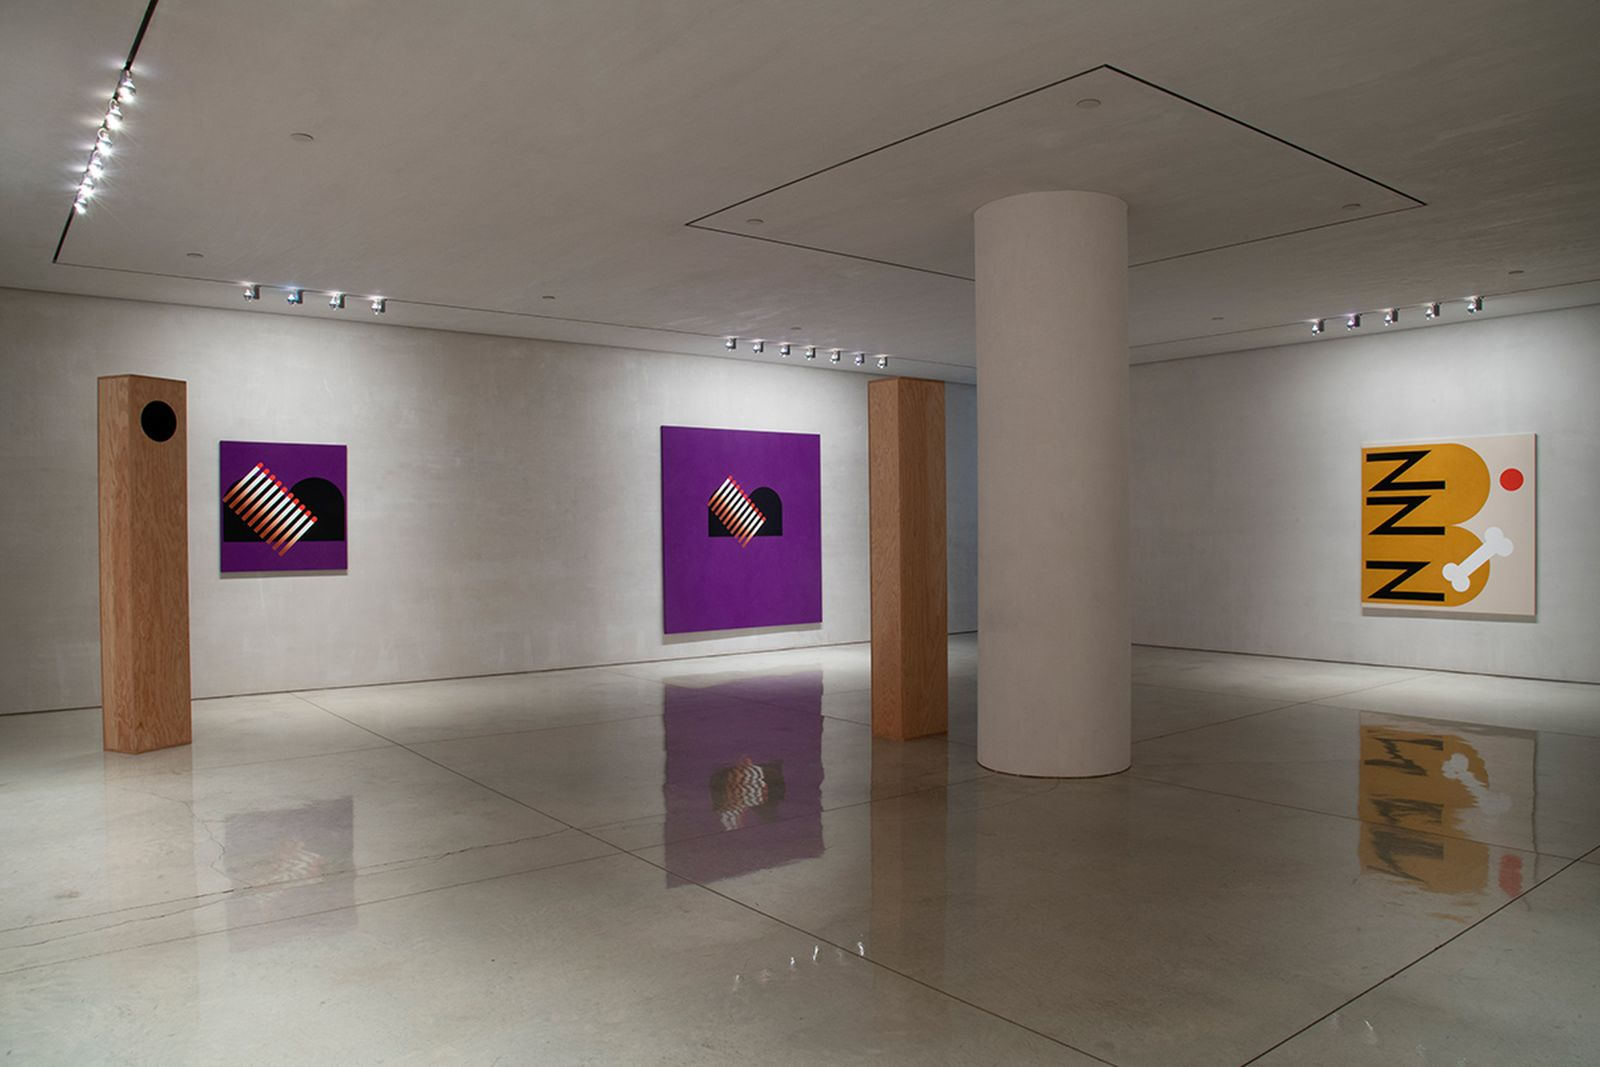 Mary Boone Gallery AMEX american express platinum art & museums